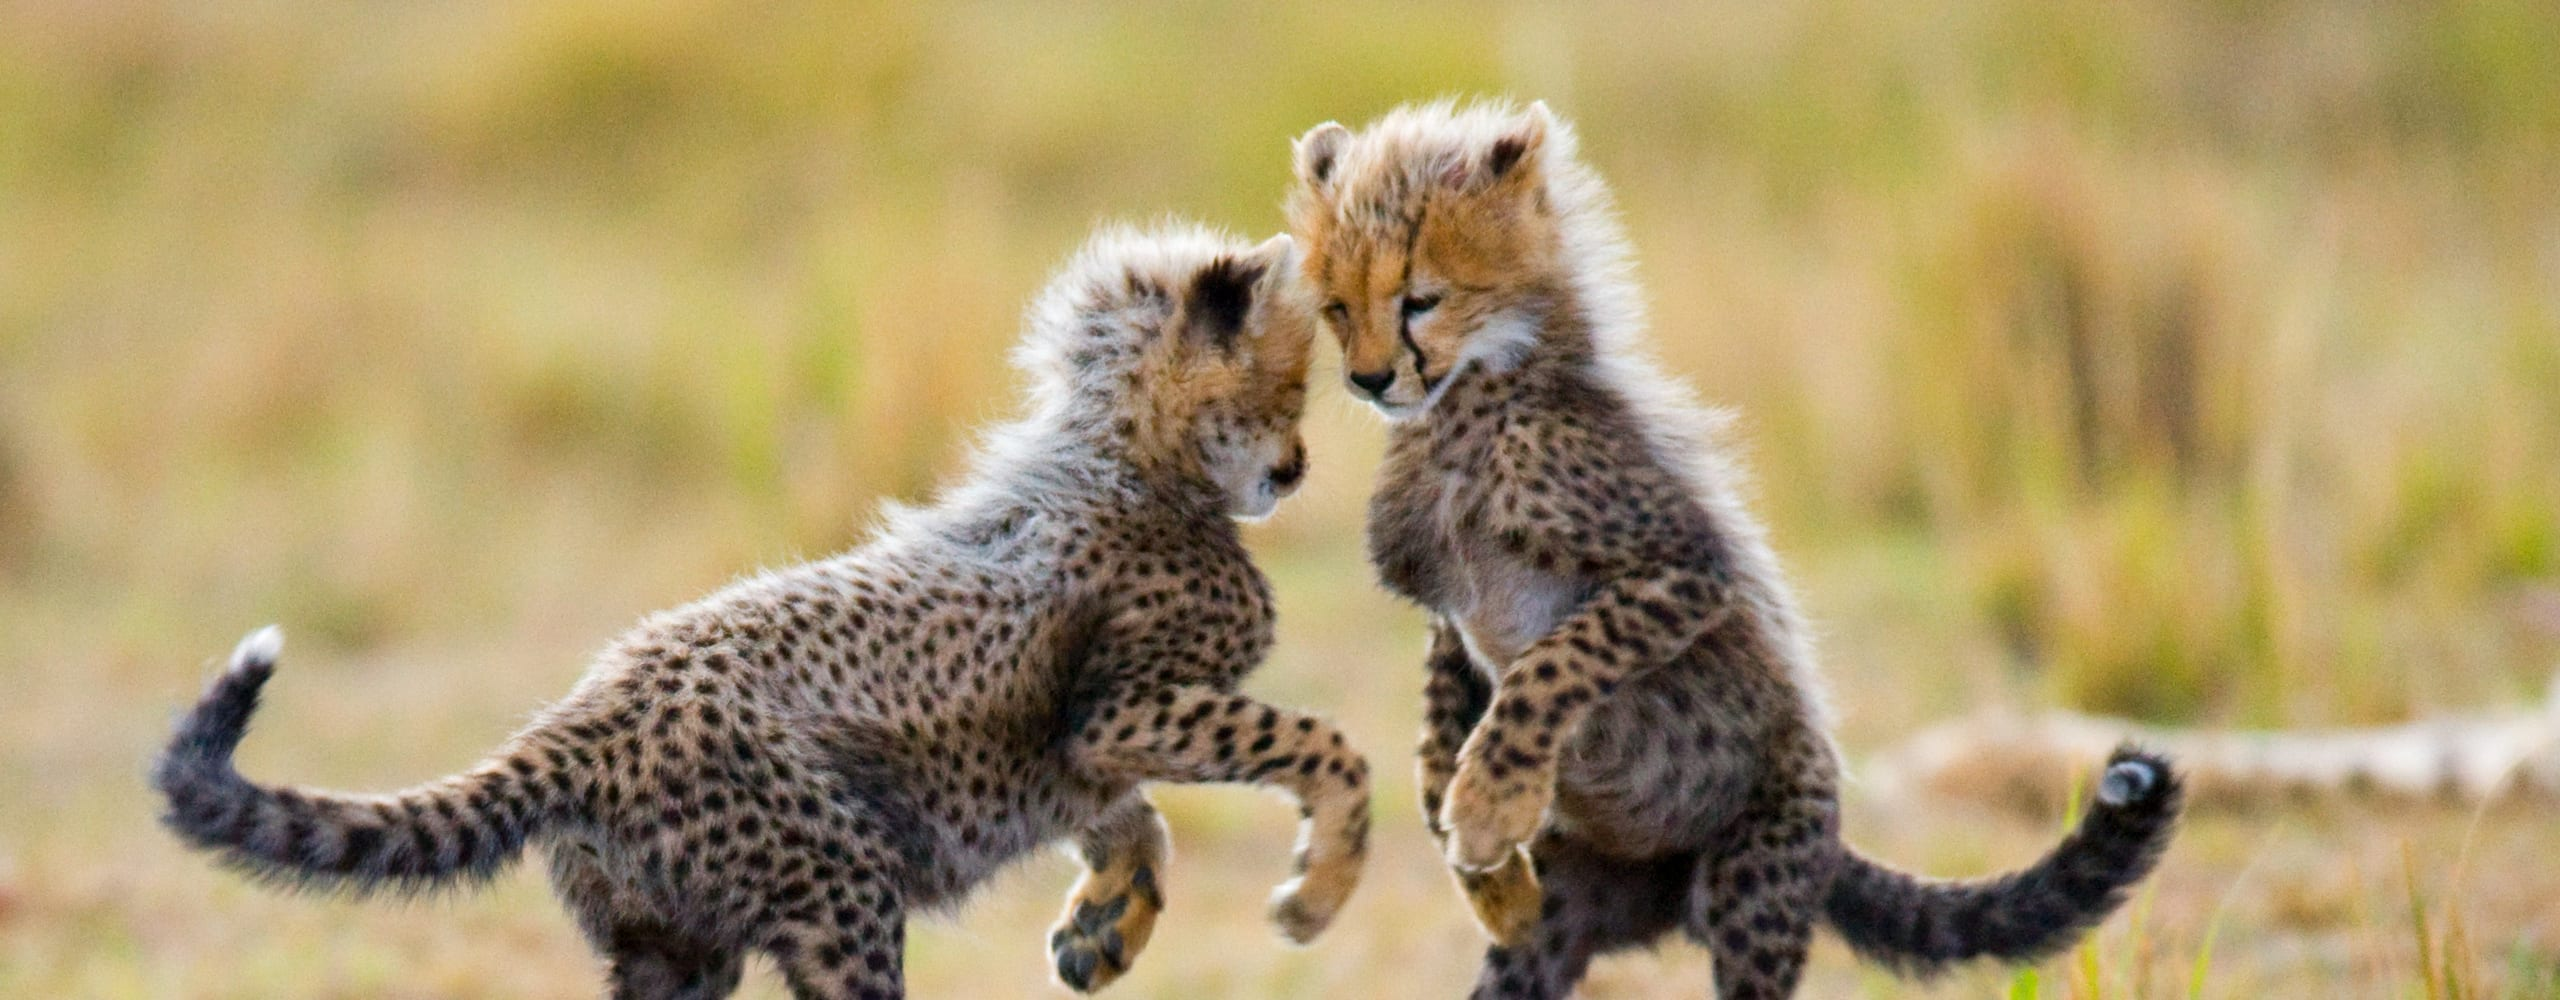 Cheetah cubs are extraordinarily cute. © Shutterstock